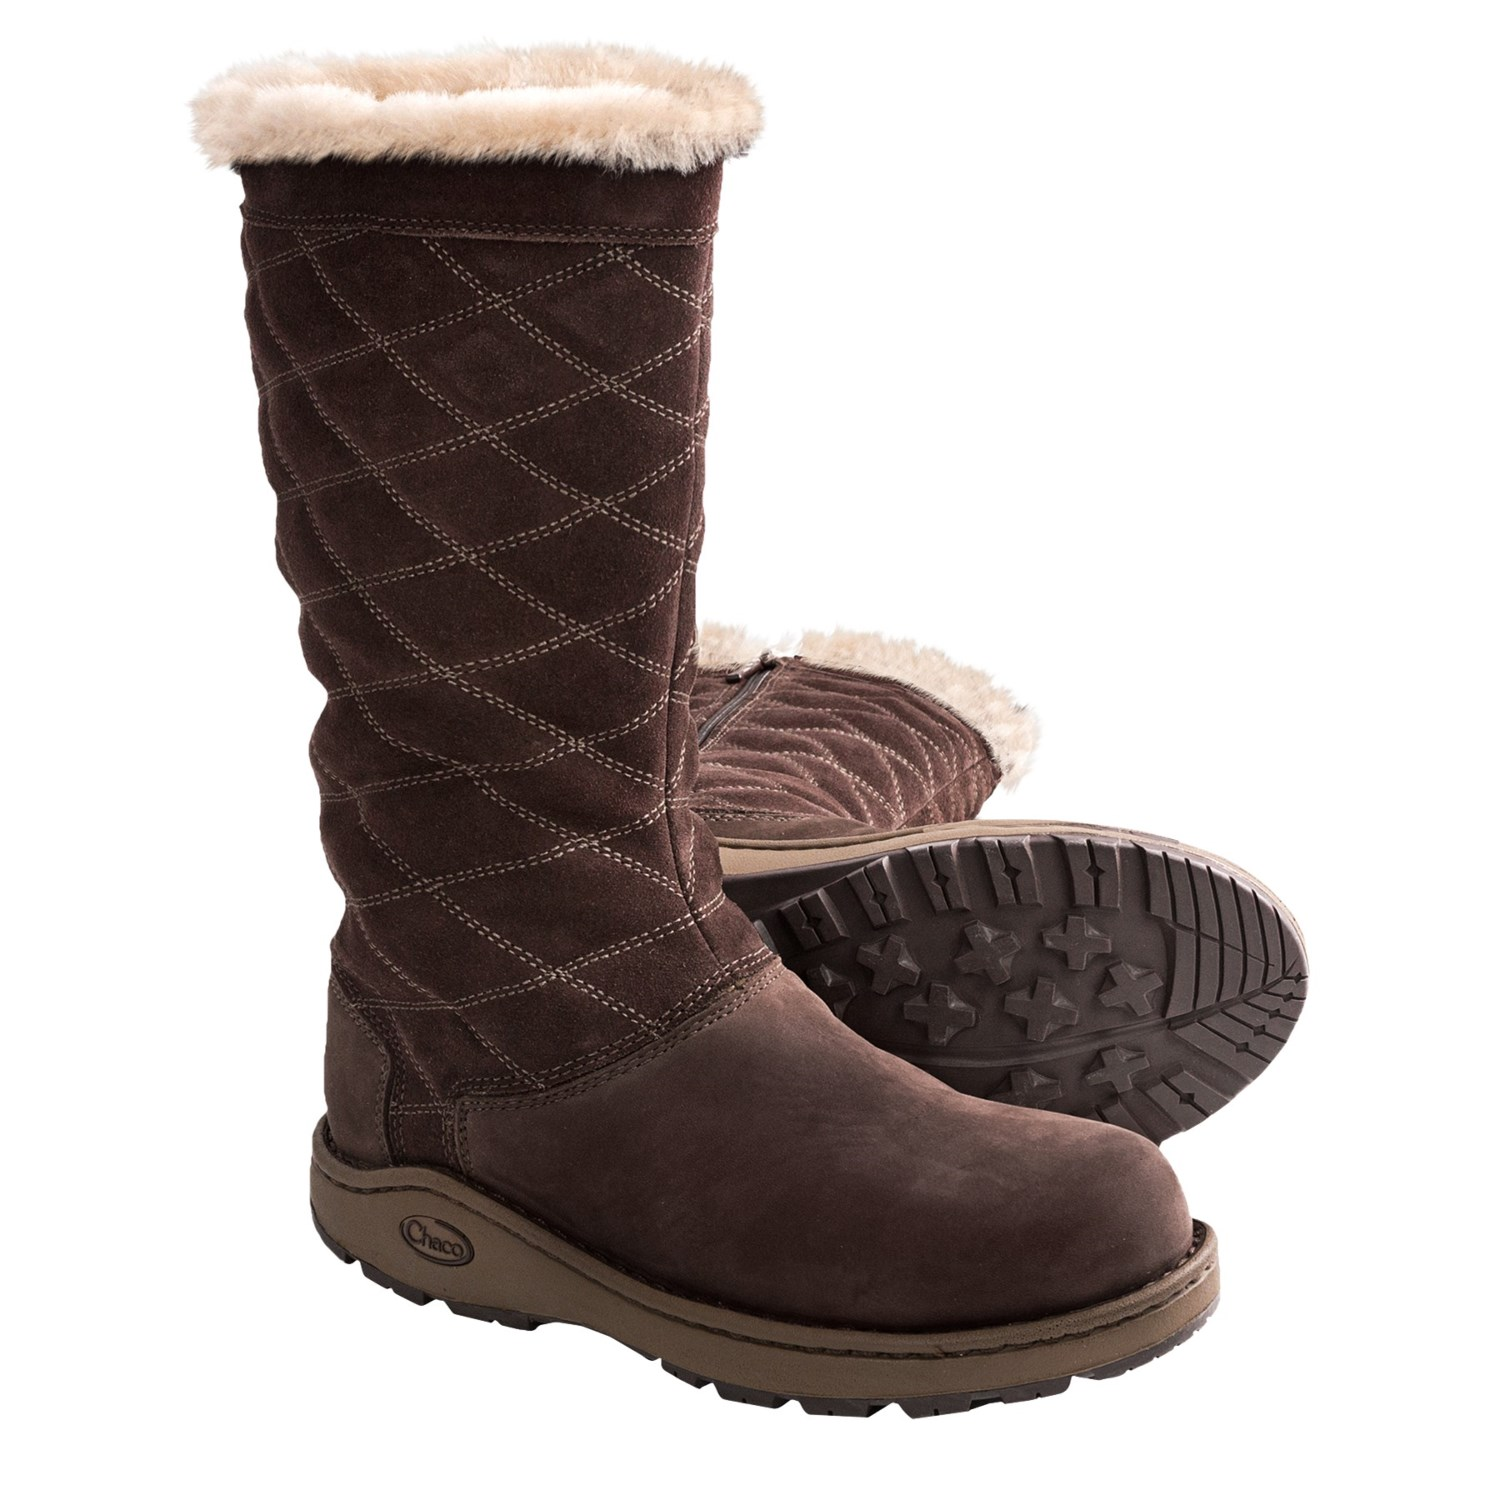 chaco arbora boots waterproof leather for